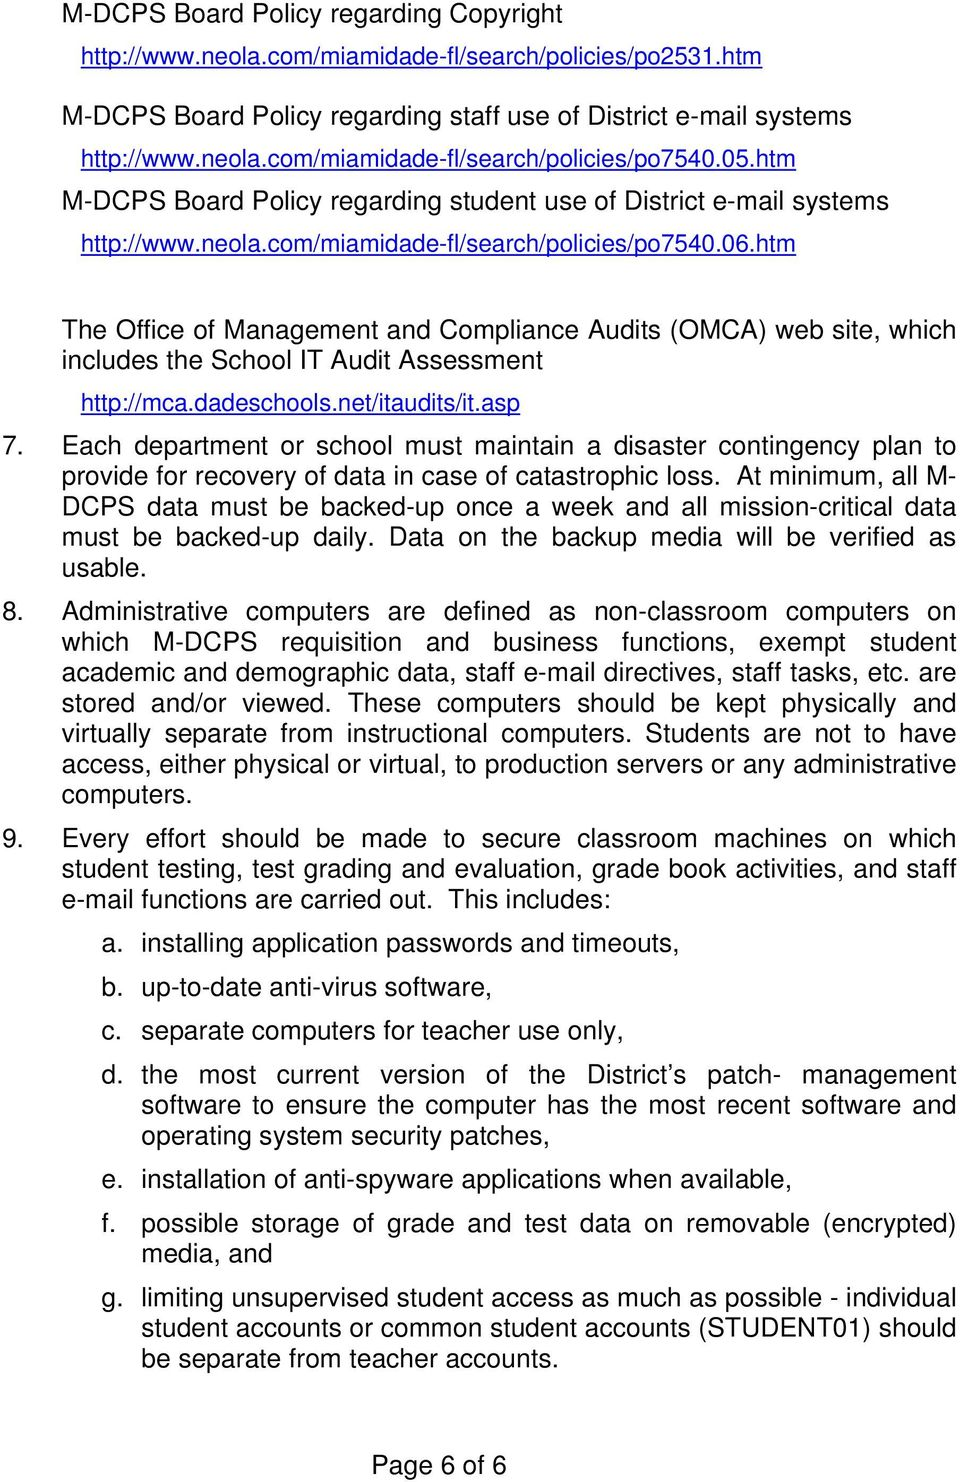 htm The Office of Management and Compliance Audits (OMCA) web site, which includes the School IT Audit Assessment http://mca.dadeschools.net/itaudits/it.asp 7.